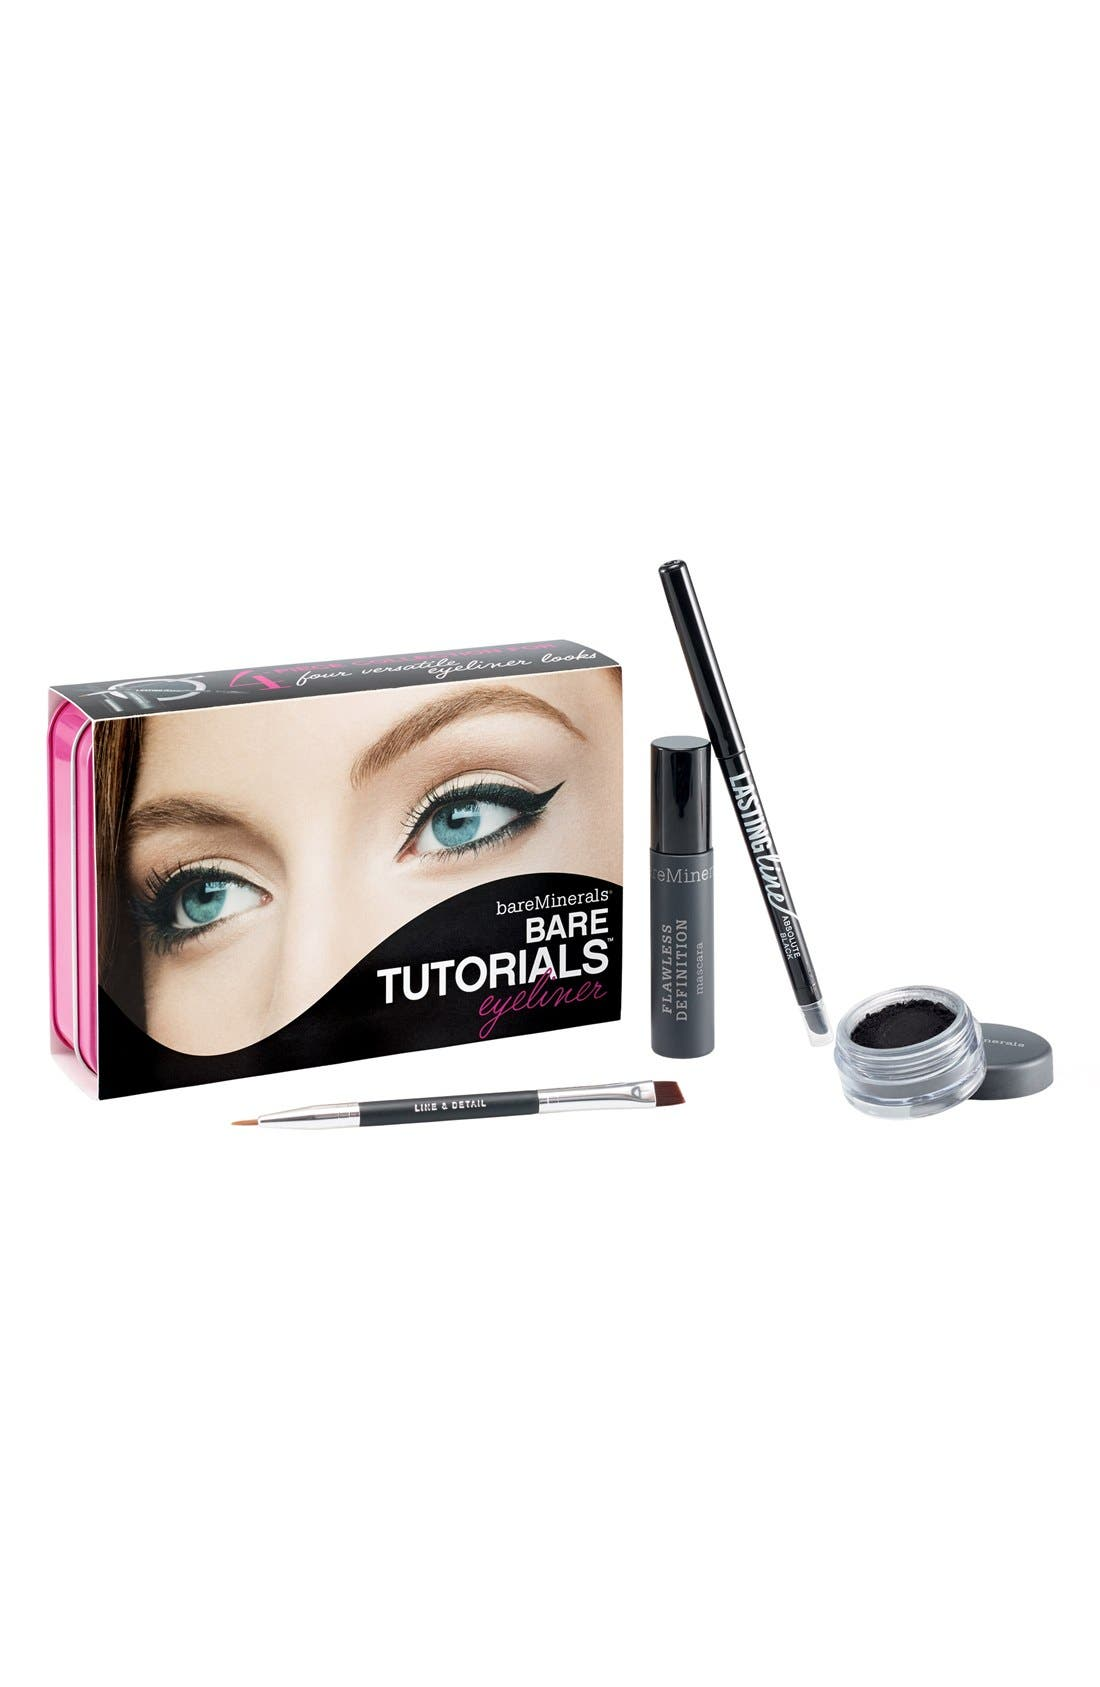 Bare Tutorials Eyeliner Set,                             Main thumbnail 1, color,                             000